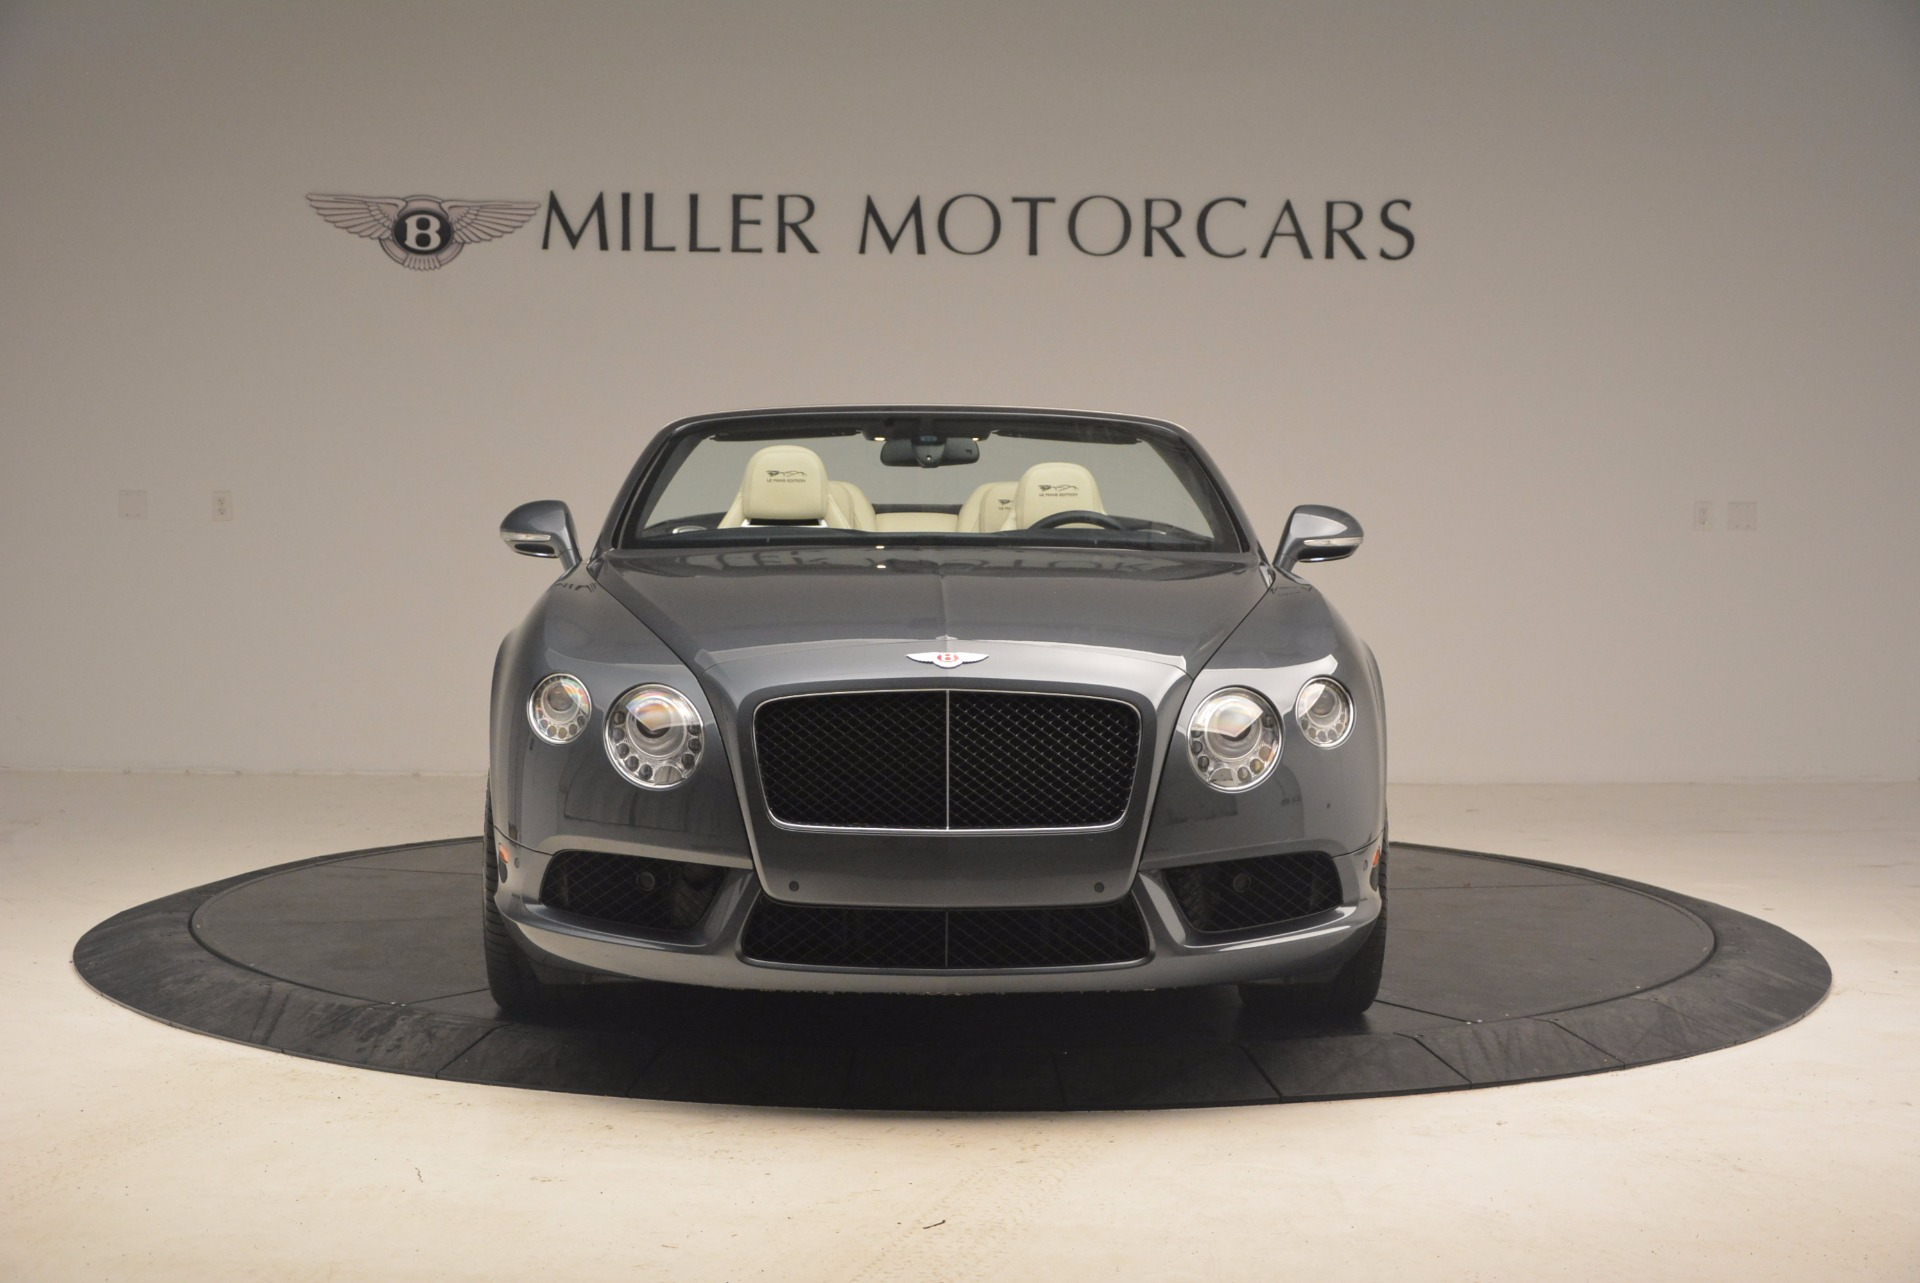 Used 2013 Bentley Continental GT V8 Le Mans Edition, 1 of 48 For Sale In Westport, CT 1288_p12